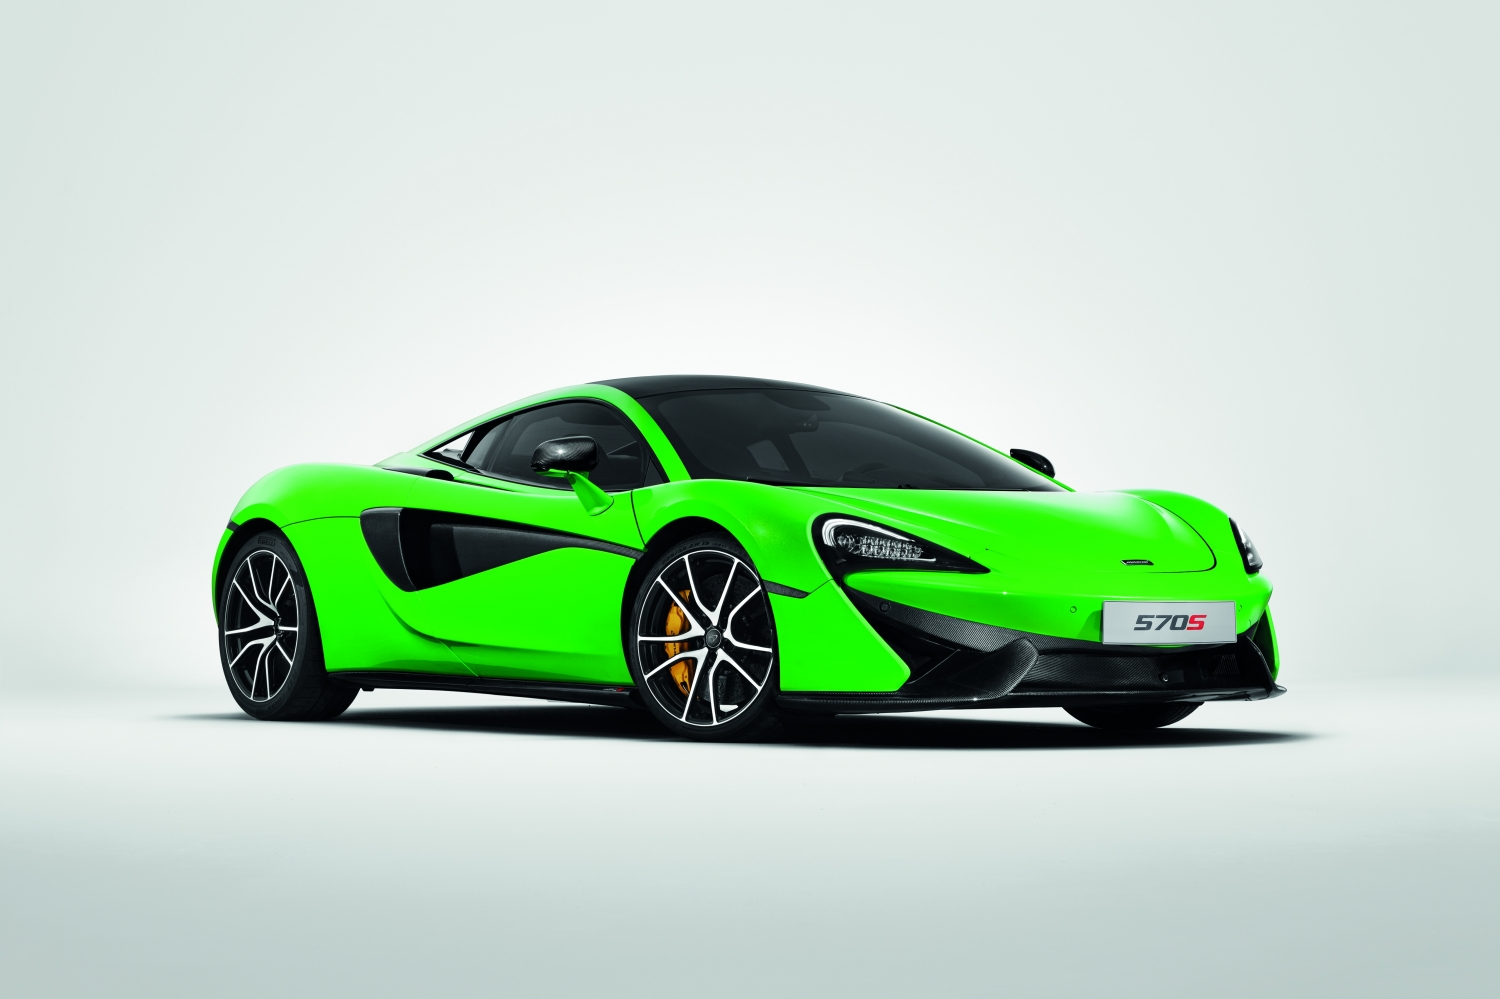 mclaren sports series cars look hot with new accessories news. Black Bedroom Furniture Sets. Home Design Ideas